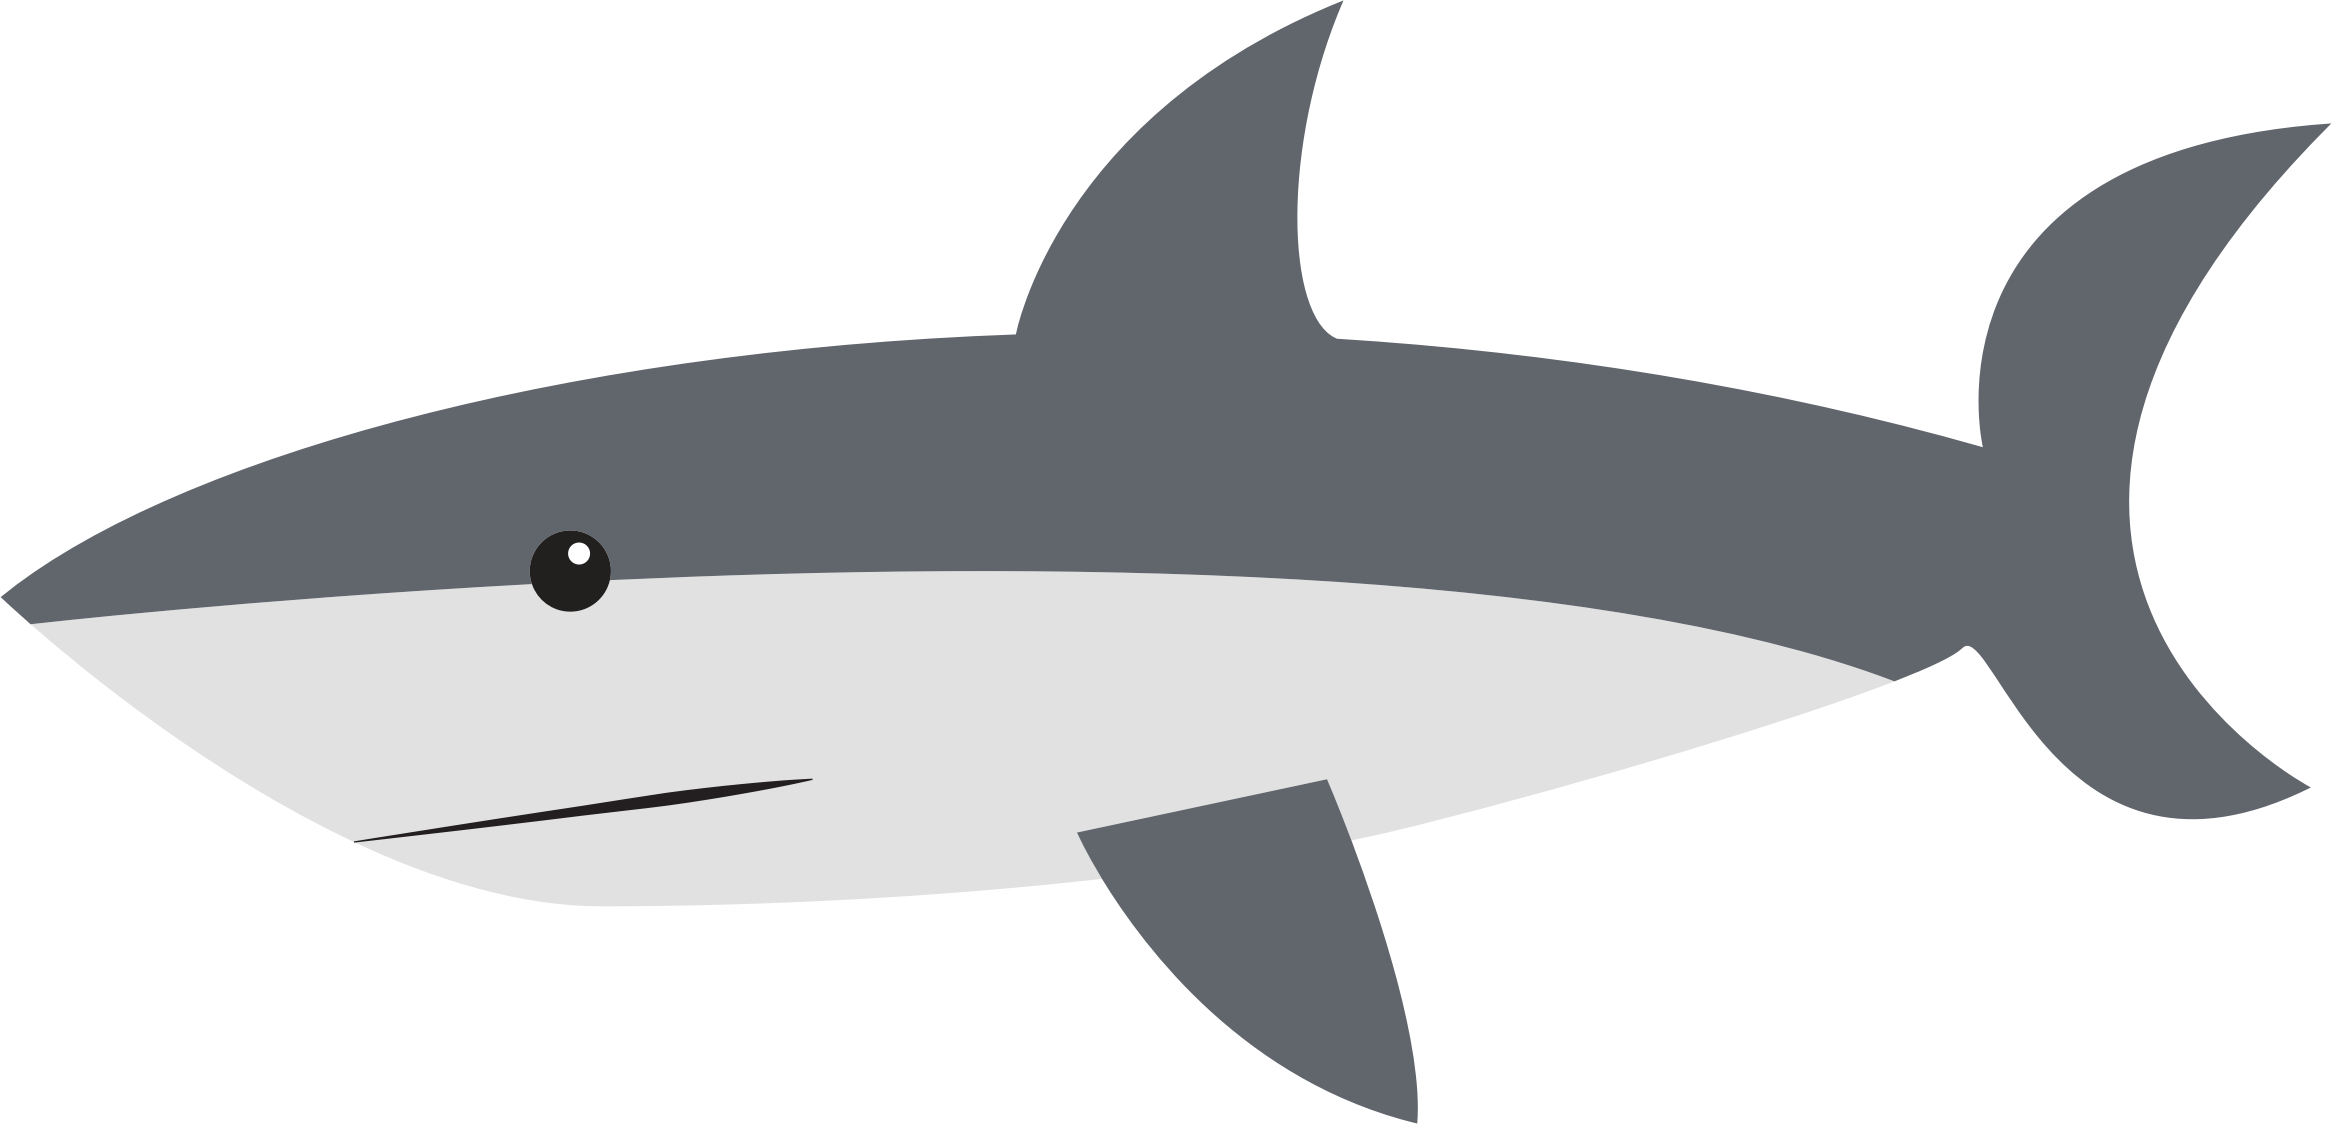 Clipart football shark. Cartoon group with items